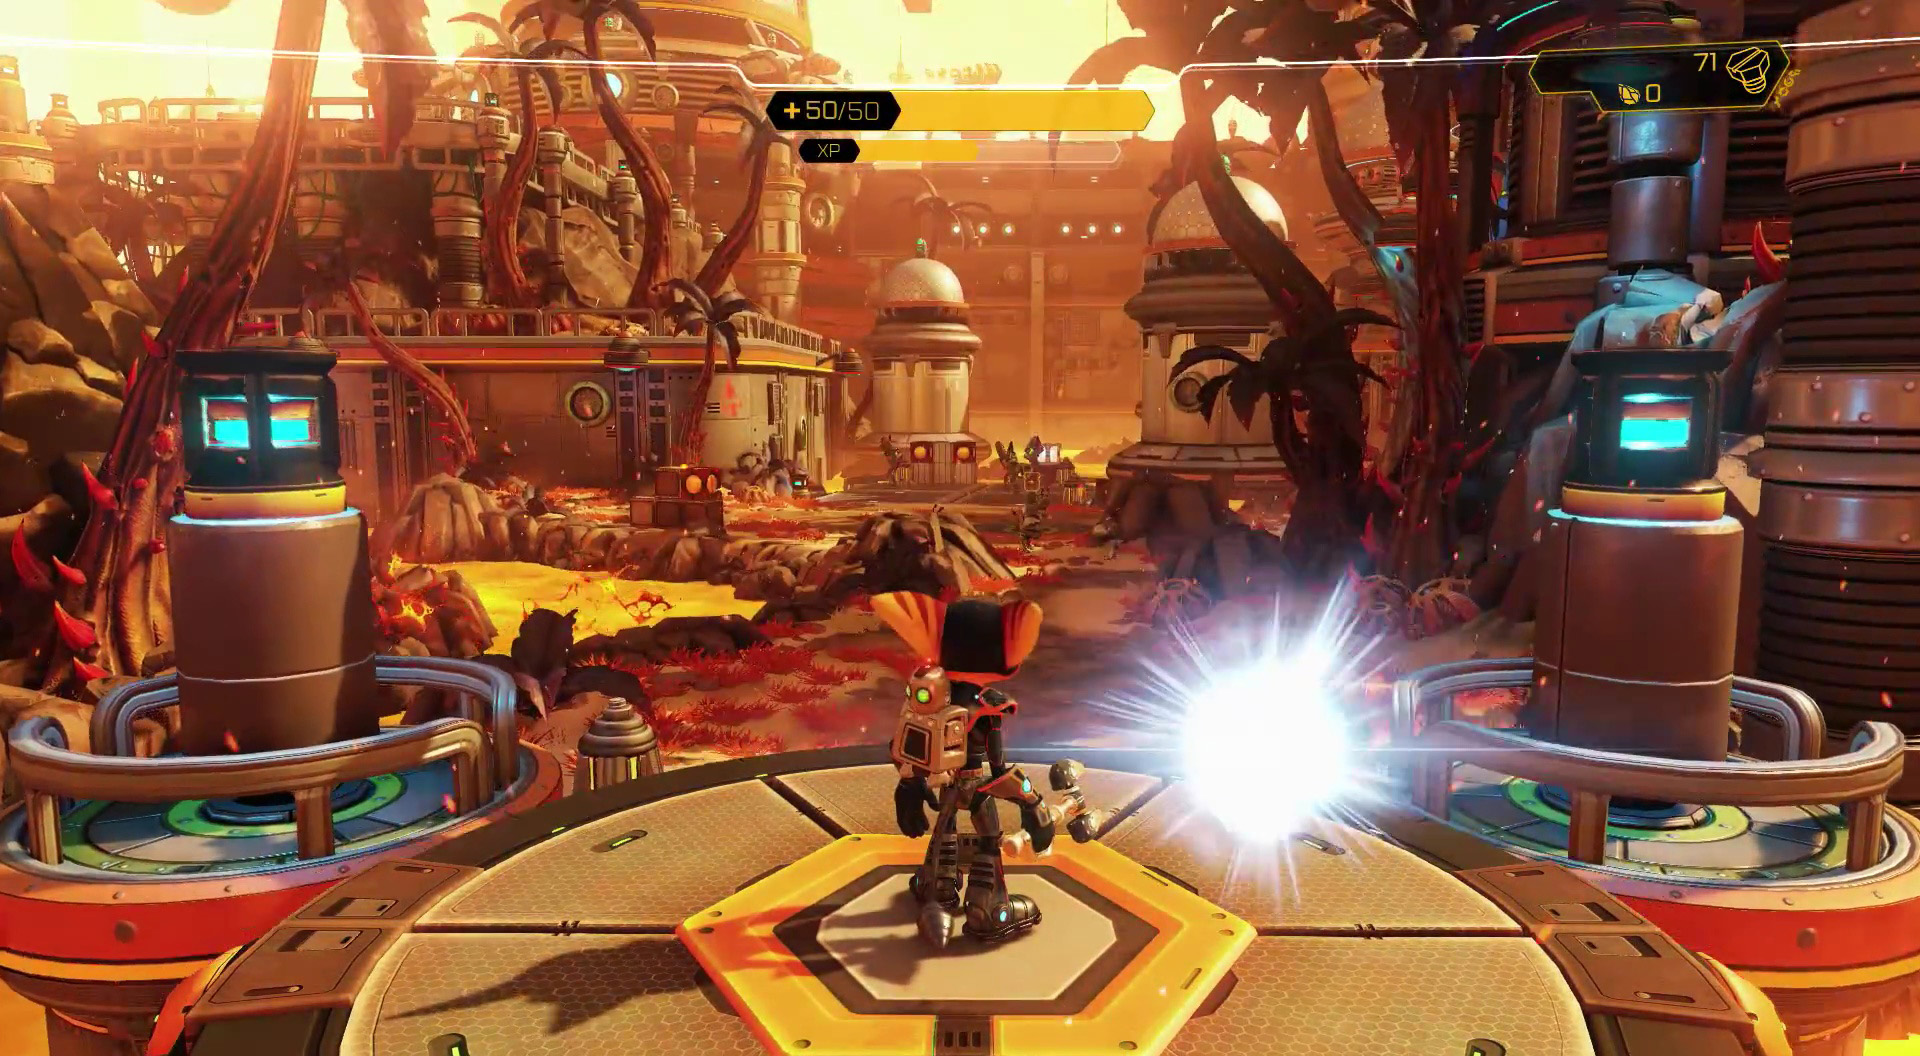 Ratchet-and-Clank-E3-2015-011